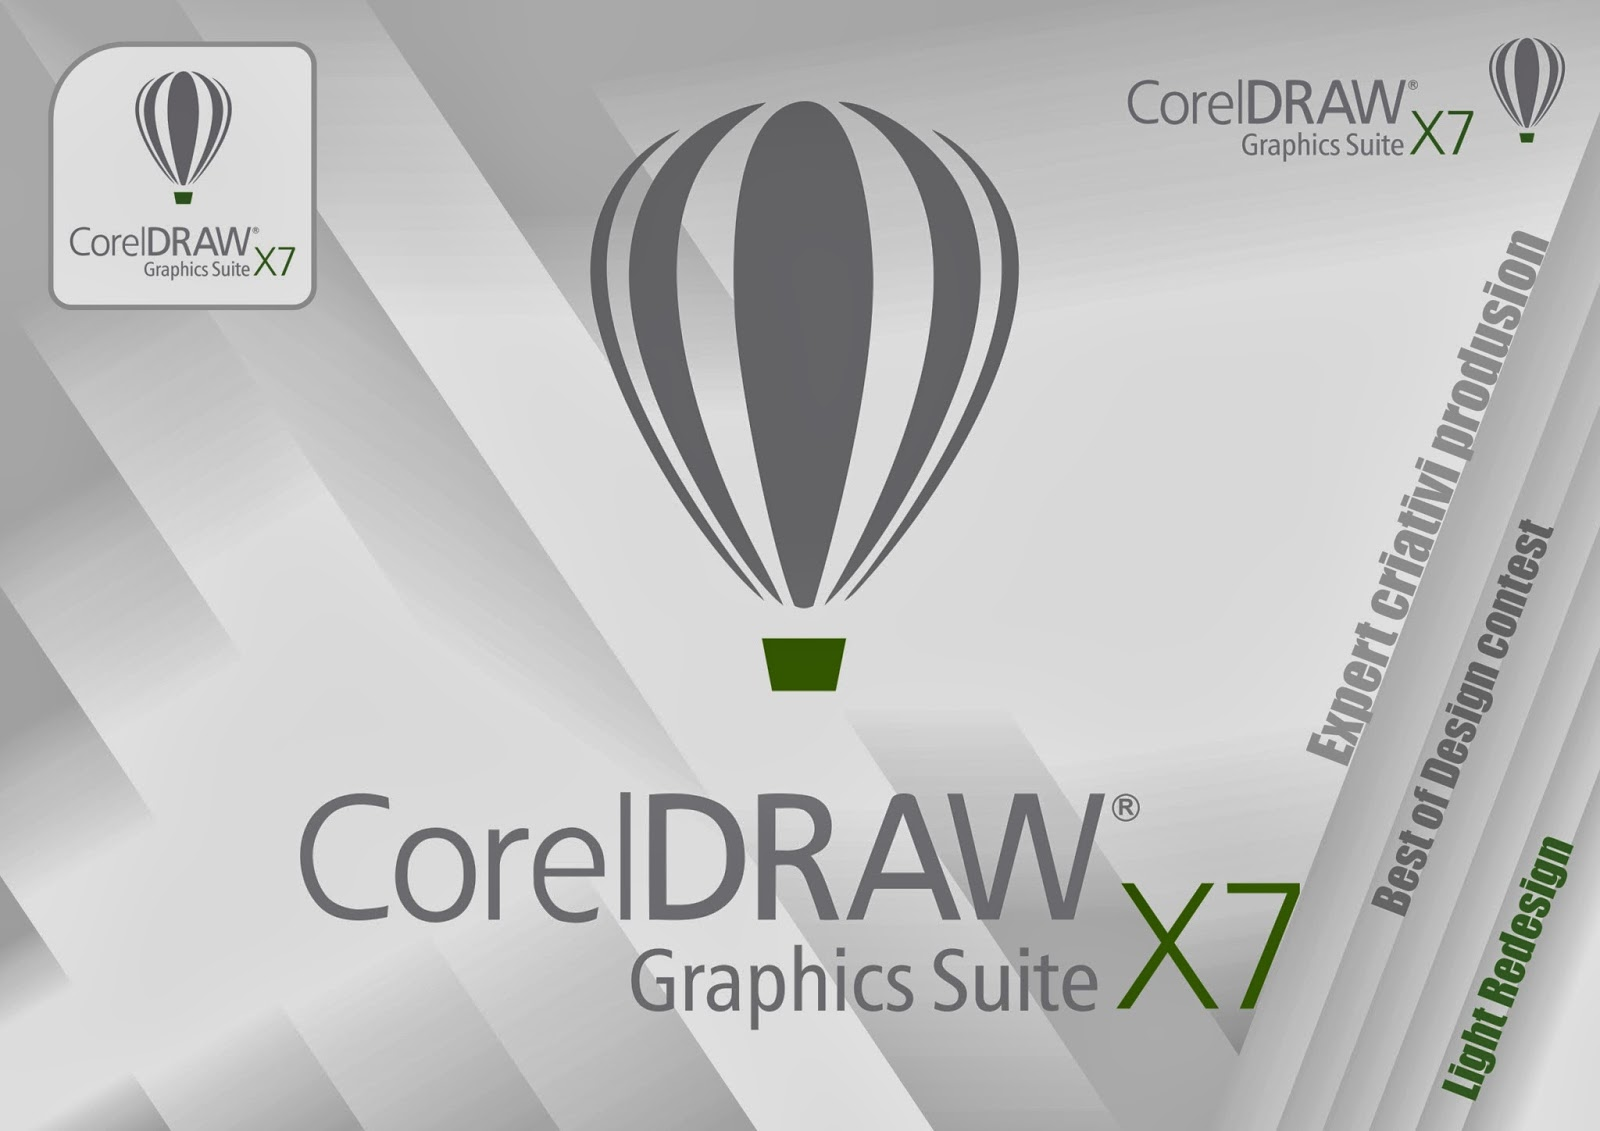 Coreldraw version 12 - Coreldraw Graphics Suite X7 Video Tour